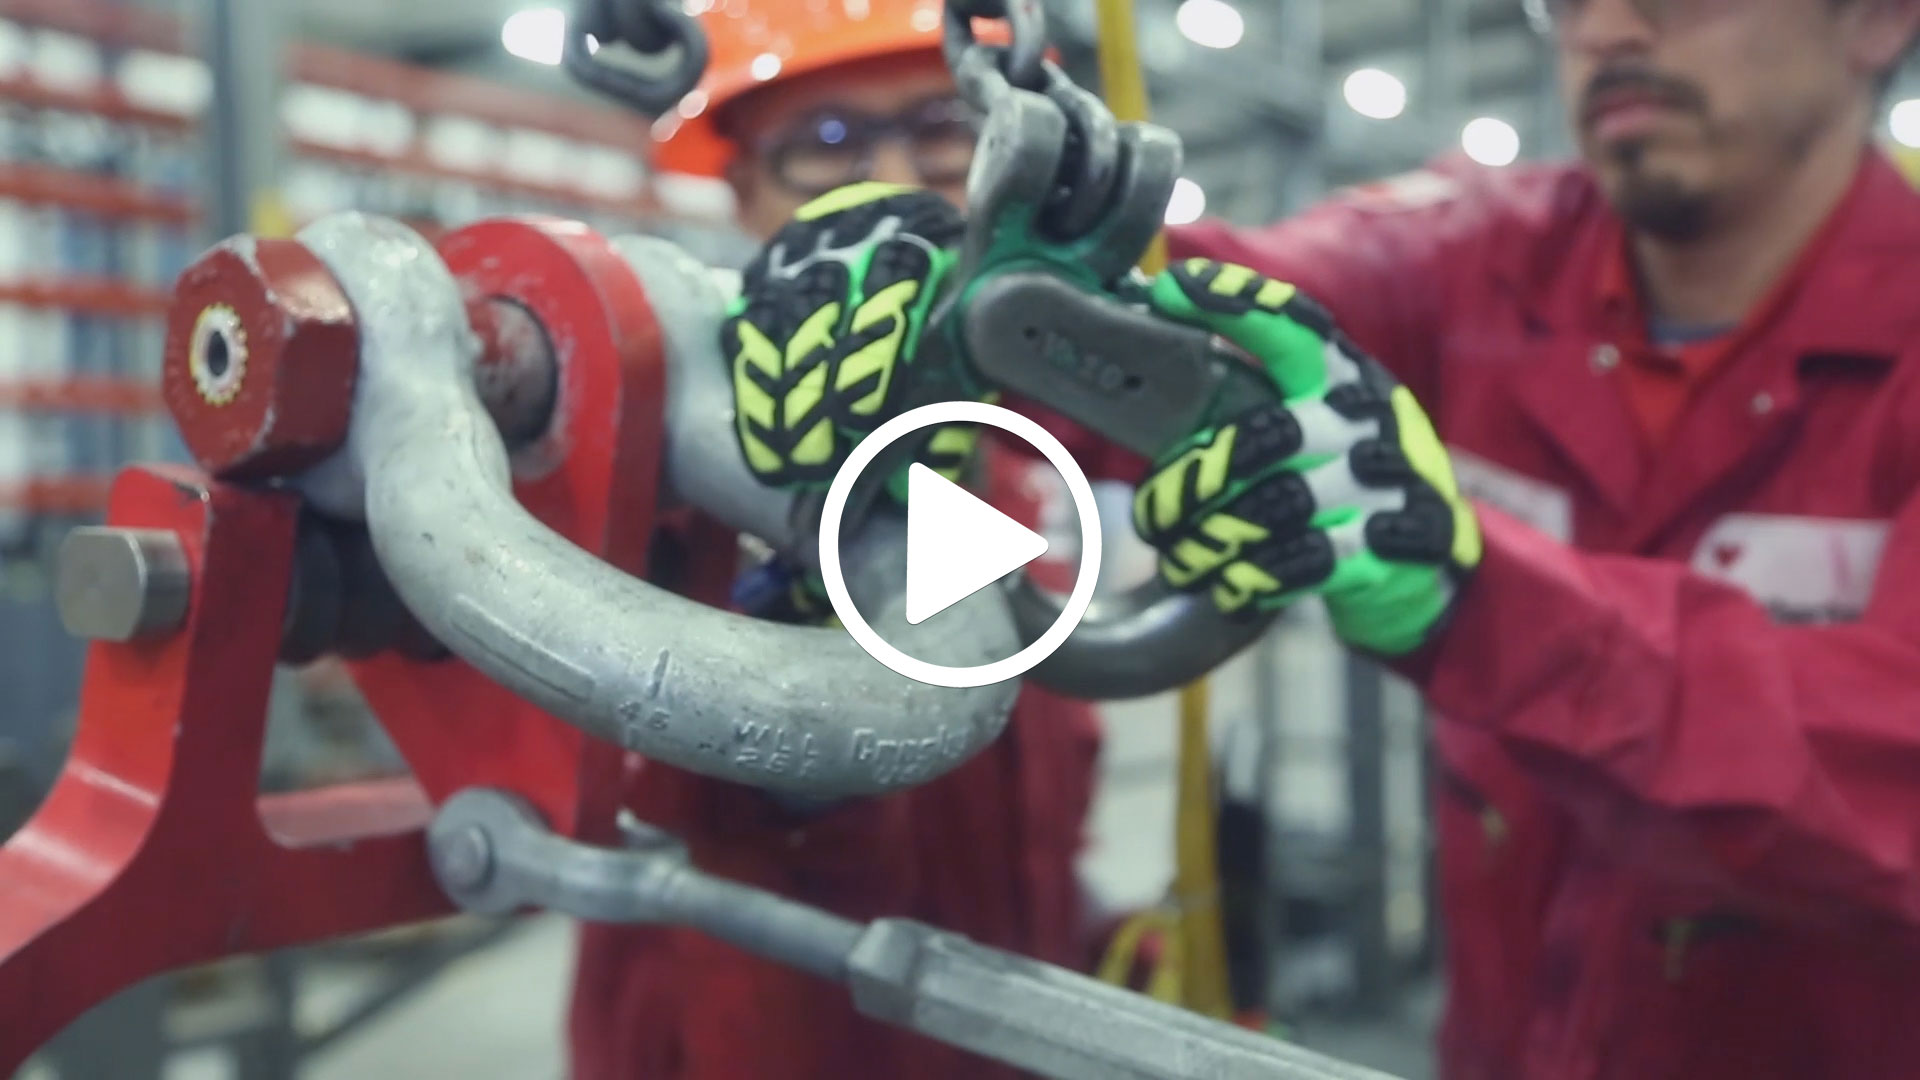 Watch our careers video for available job opening Field Service Technician I (Capillary) in Williston , ND